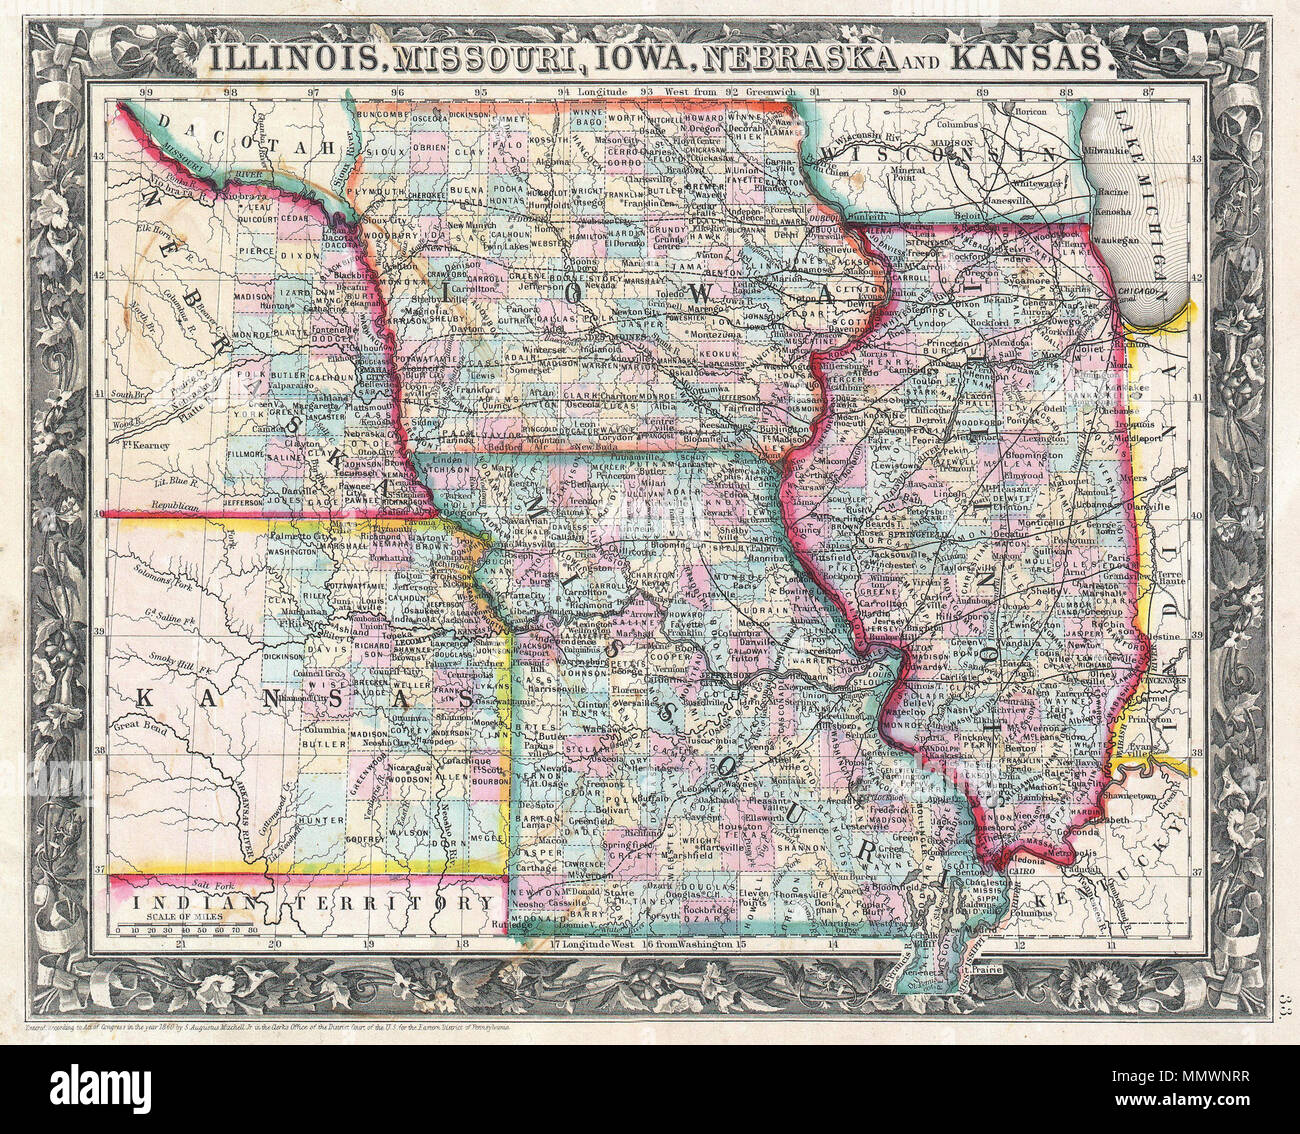 Kansas State Map With Cities And Towns on map of kansas with towns, kansas major cities, kansas ghost towns map, google map of kansas towns, kansas to colorado, kansas counties and cities, kansas map with all cities, kansas map with rivers, western washington state map with cities and towns, kansas cities and towns list, kansas towns beginning with s, missouri counties map with towns, kansas and colorado map, map of ohio with cities and towns, kansas map with counties shown, kansas counties and county seats, kansas map showing cities, wyoming cities and towns, kansas largest cities, kansas map with counties printable,